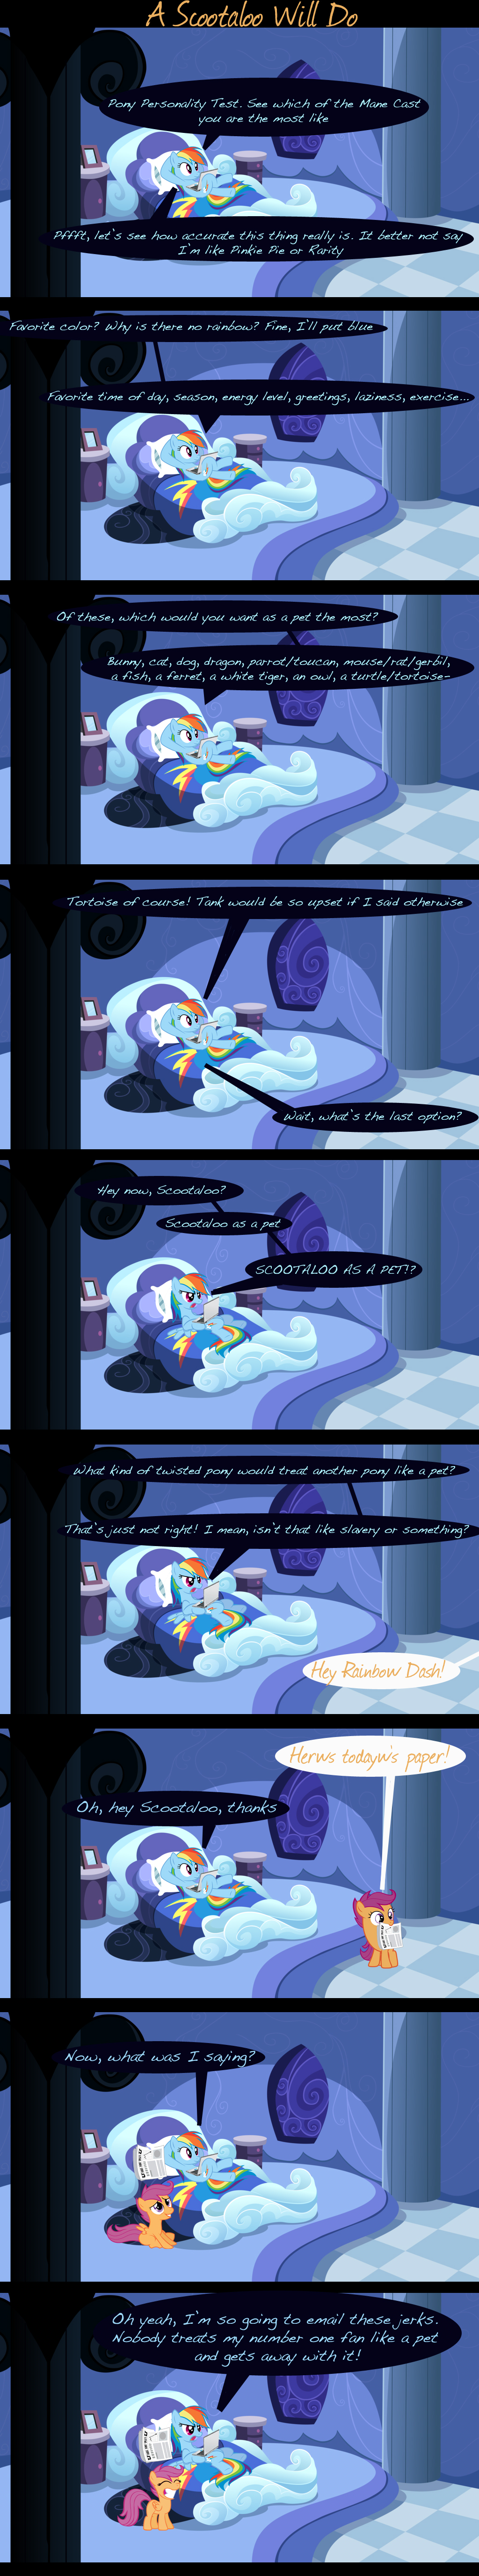 A Scootaloo Will Do By Thundercracker417 On Deviantart Rainbow Dash Pony My Little Pony She maintains the weather and clears the skies in ponyville. pinterest